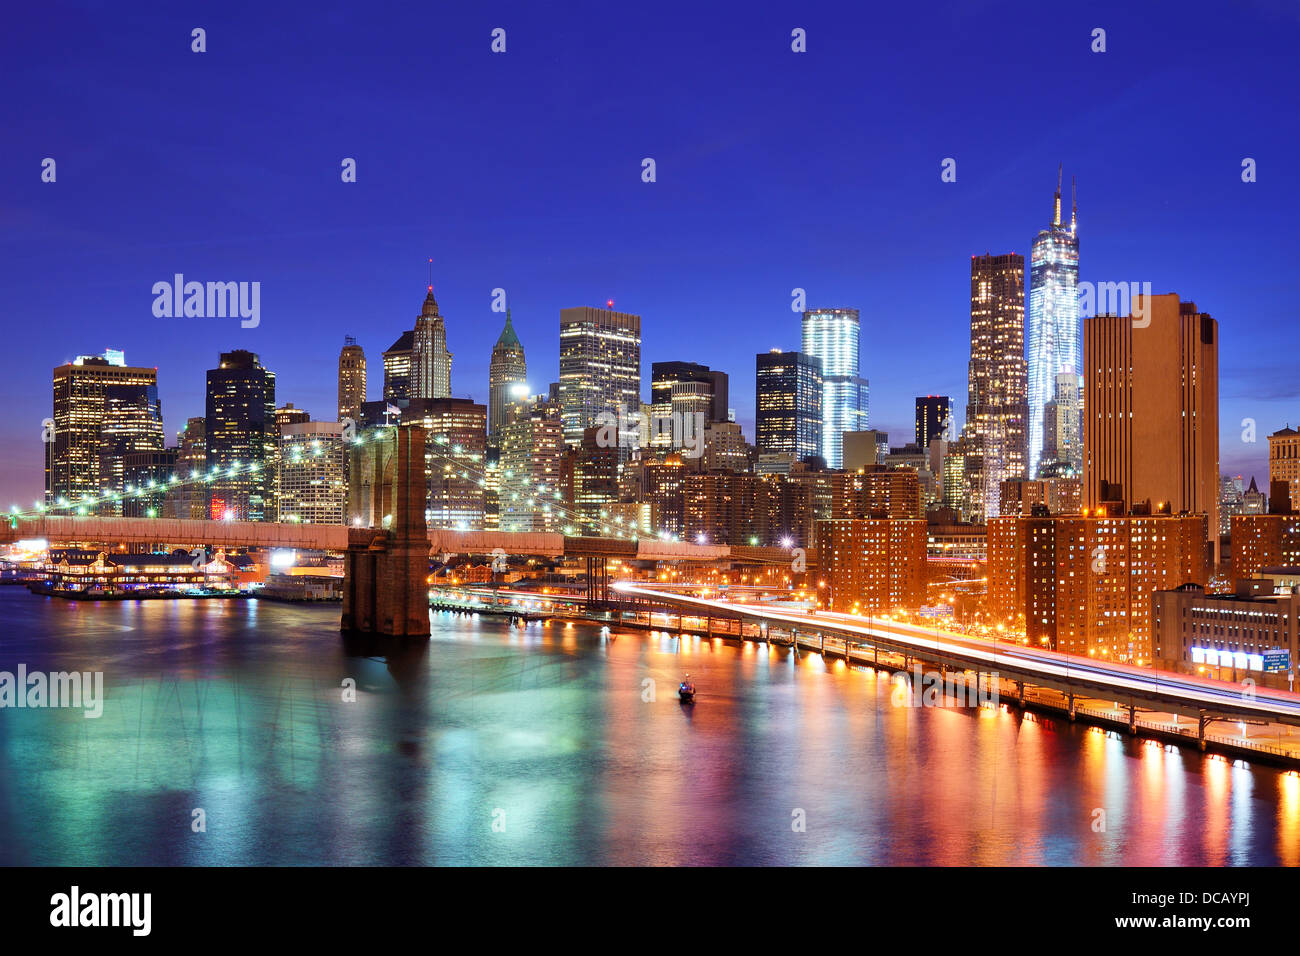 Lower Manhattan from above the East River in New York City. - Stock Image